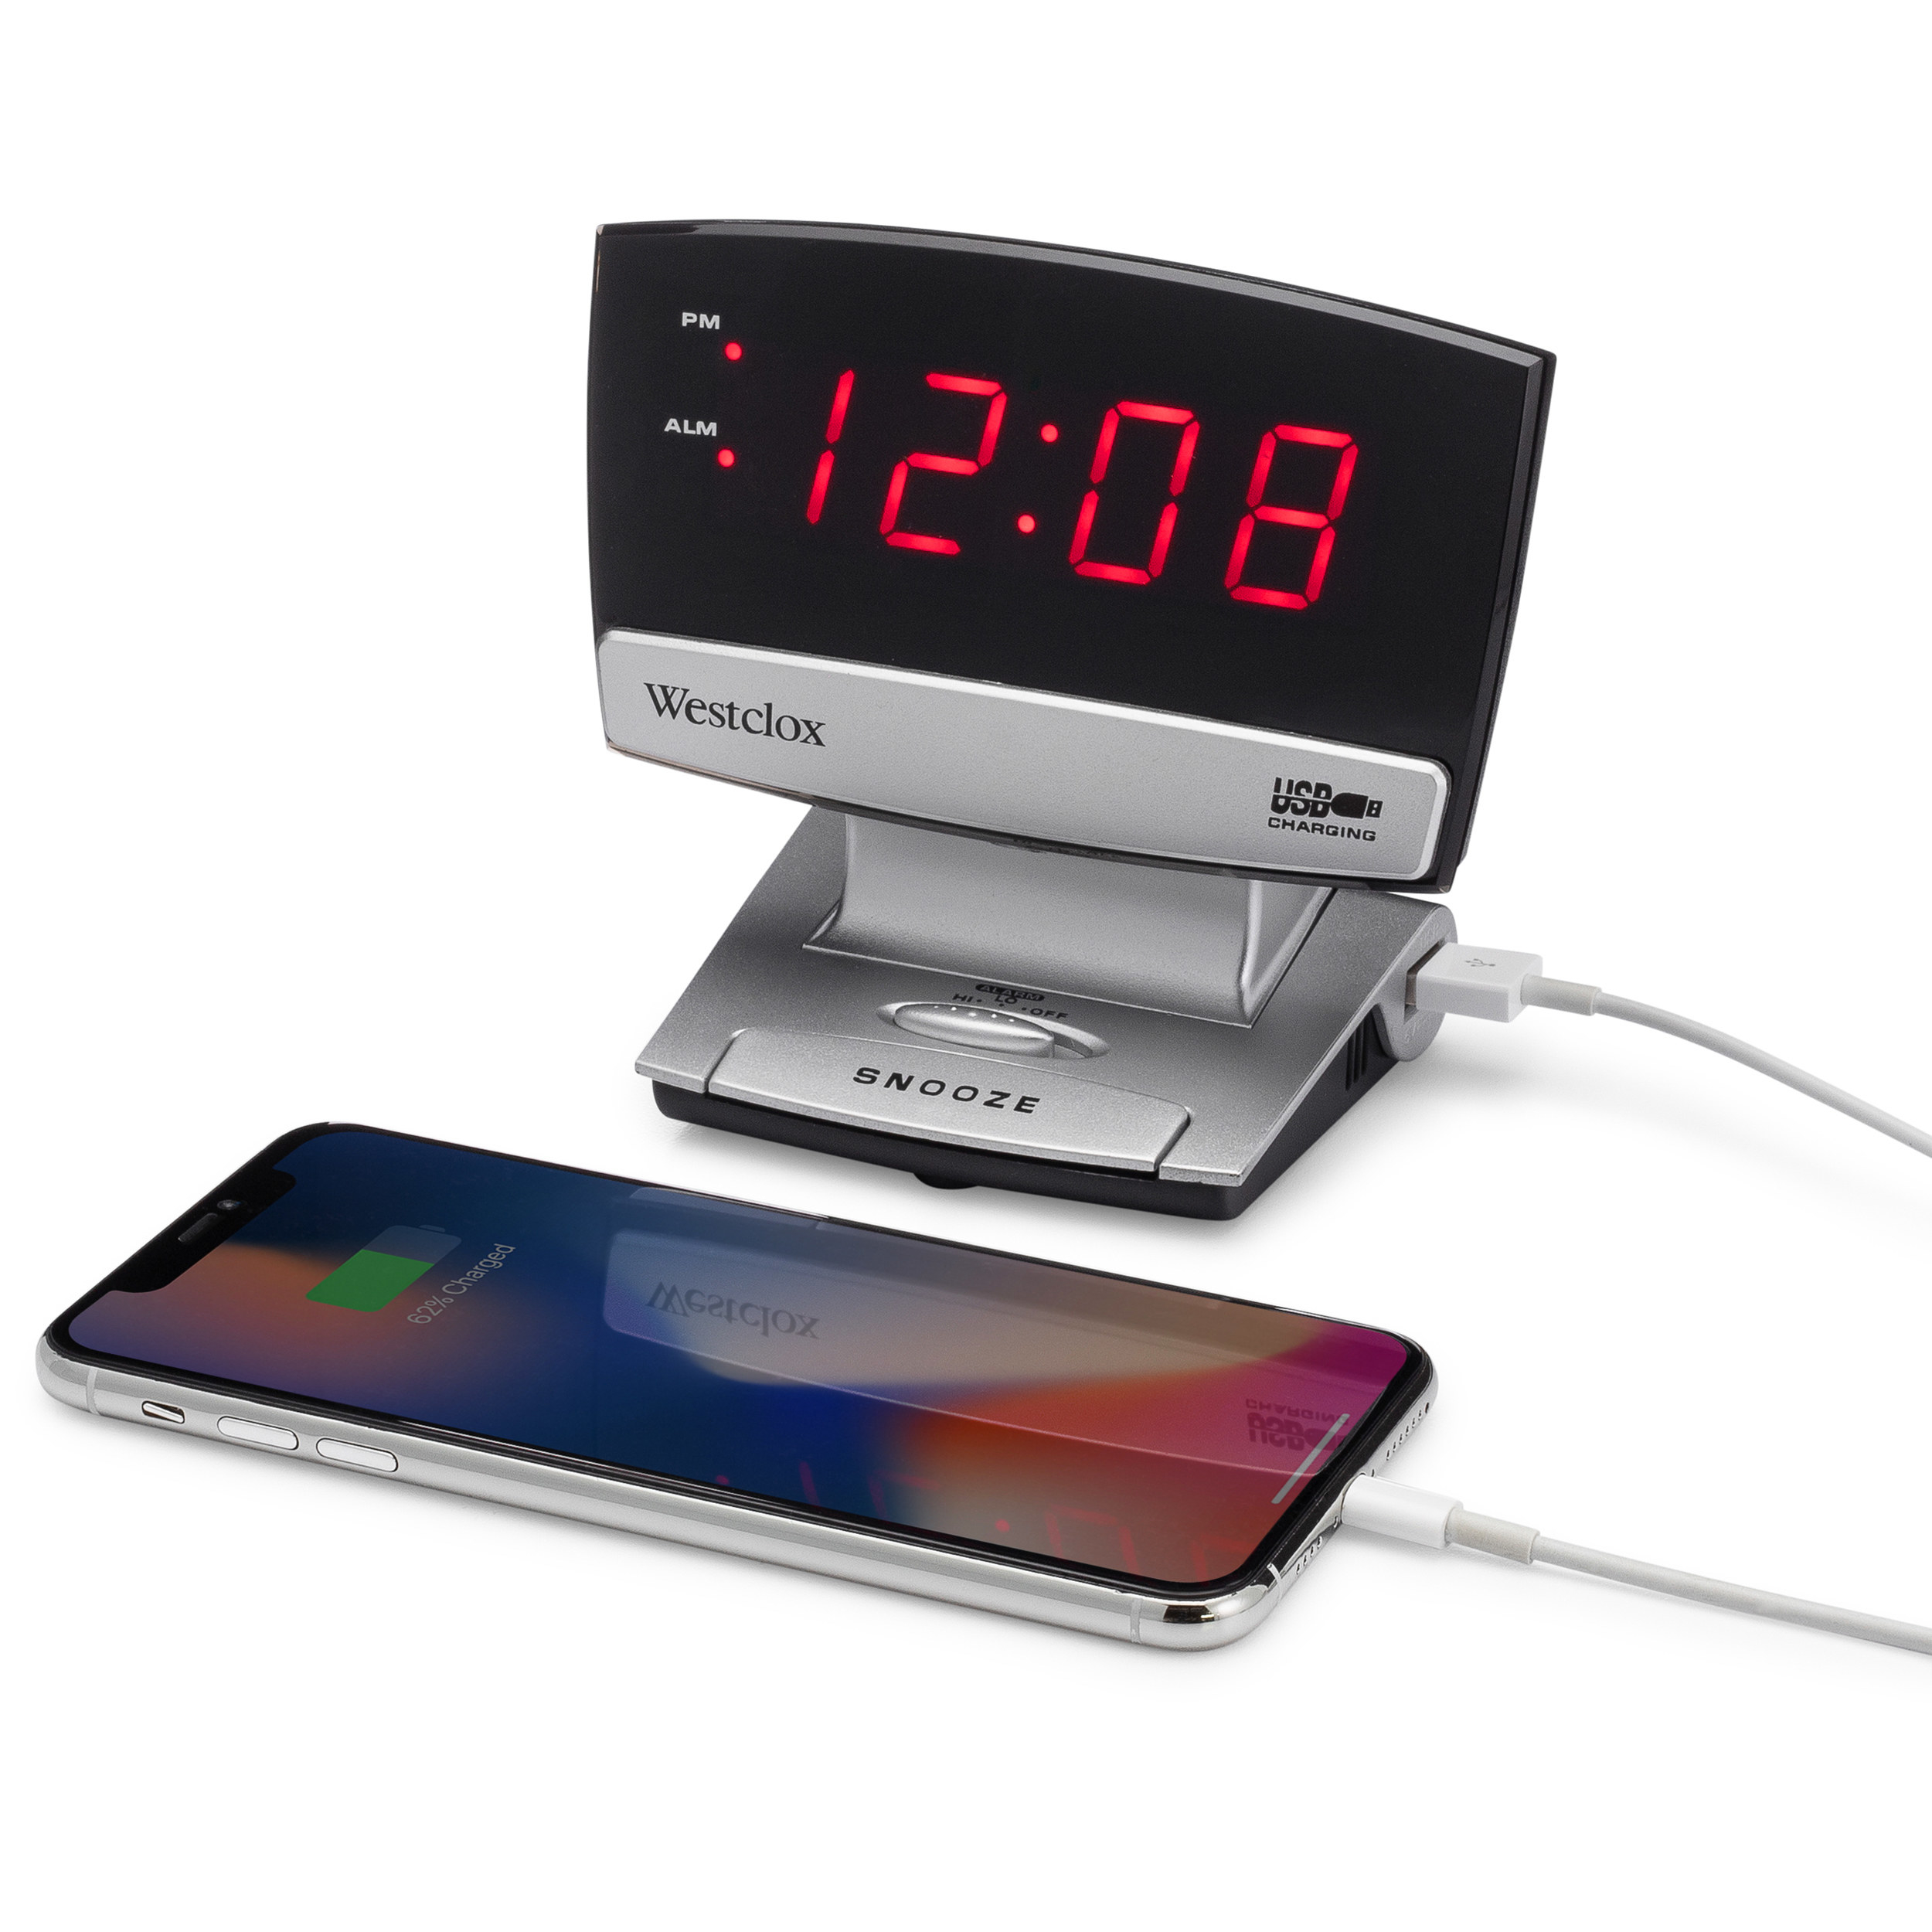 TheLED display alarm clock with a USB charging port